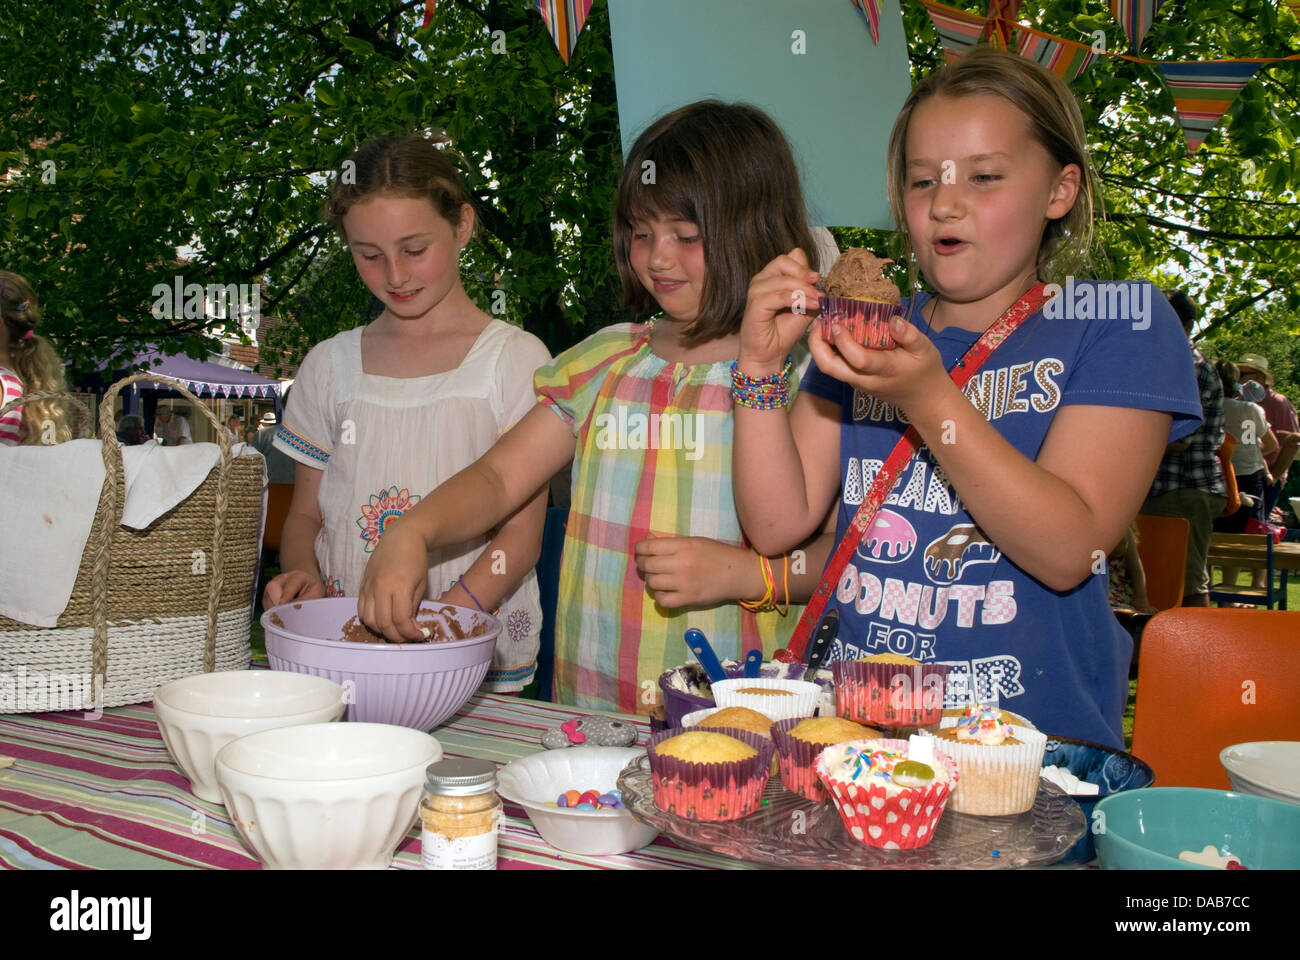 Youngsters at cake stall decorating/icing their own cake at a summer fete, East Meon, Hampshire, UK. - Stock Image